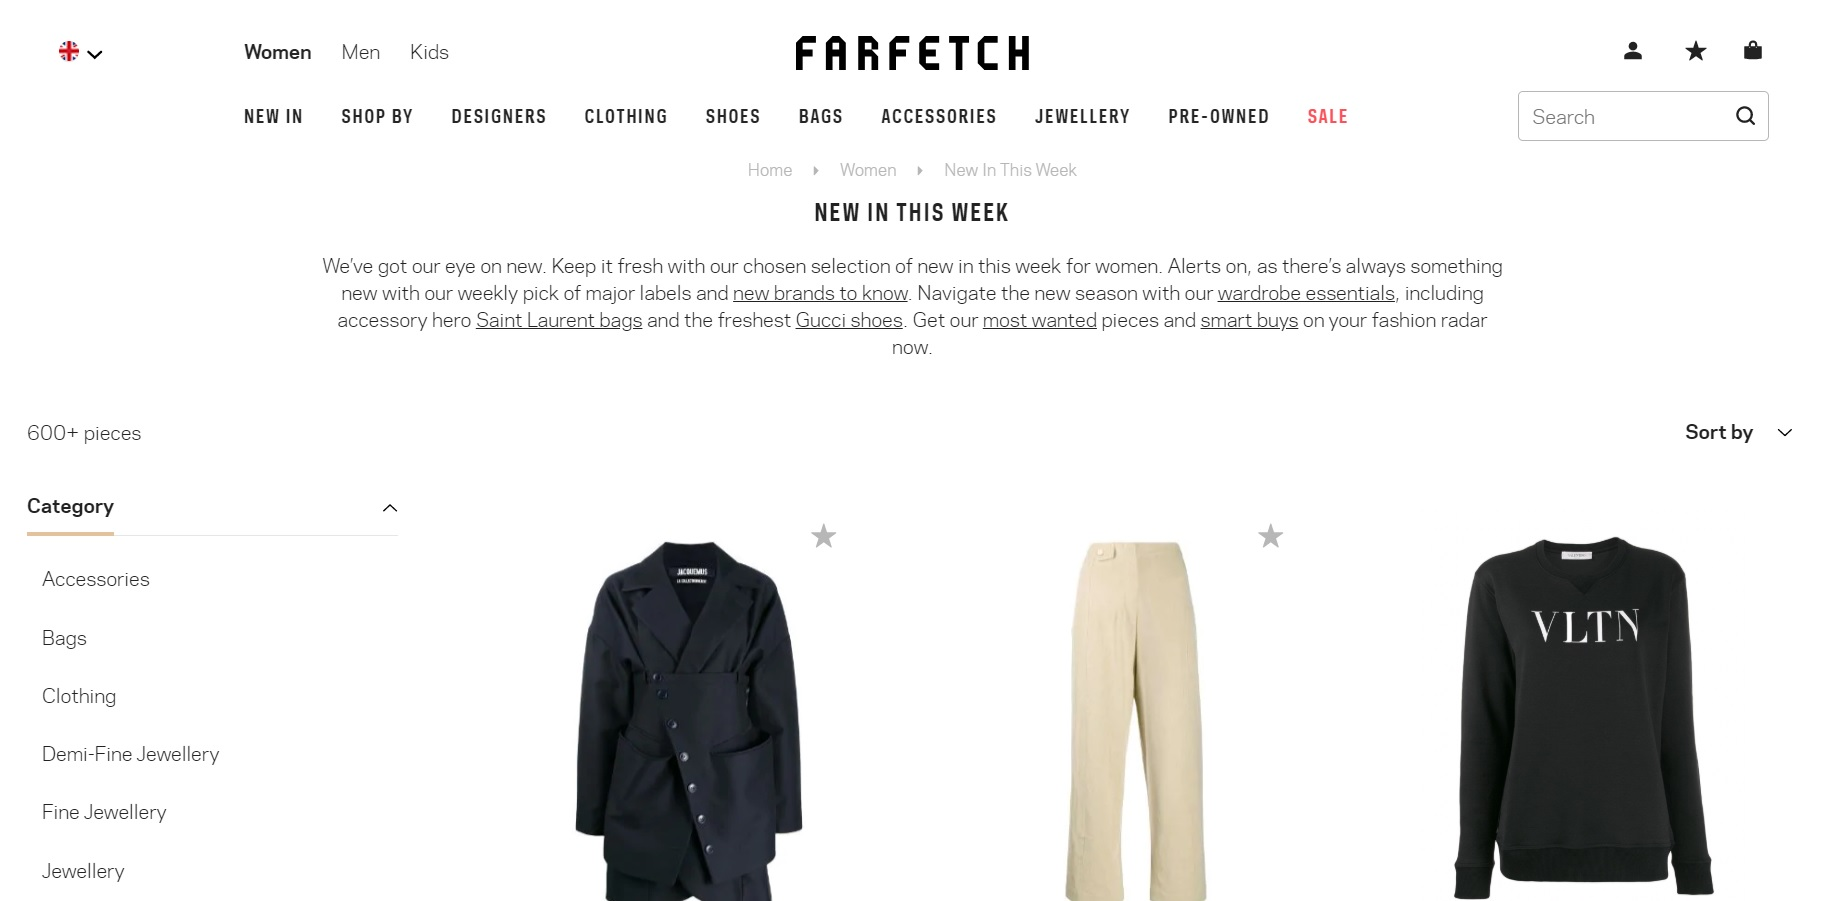 Farfetch Luxury Fashion Store